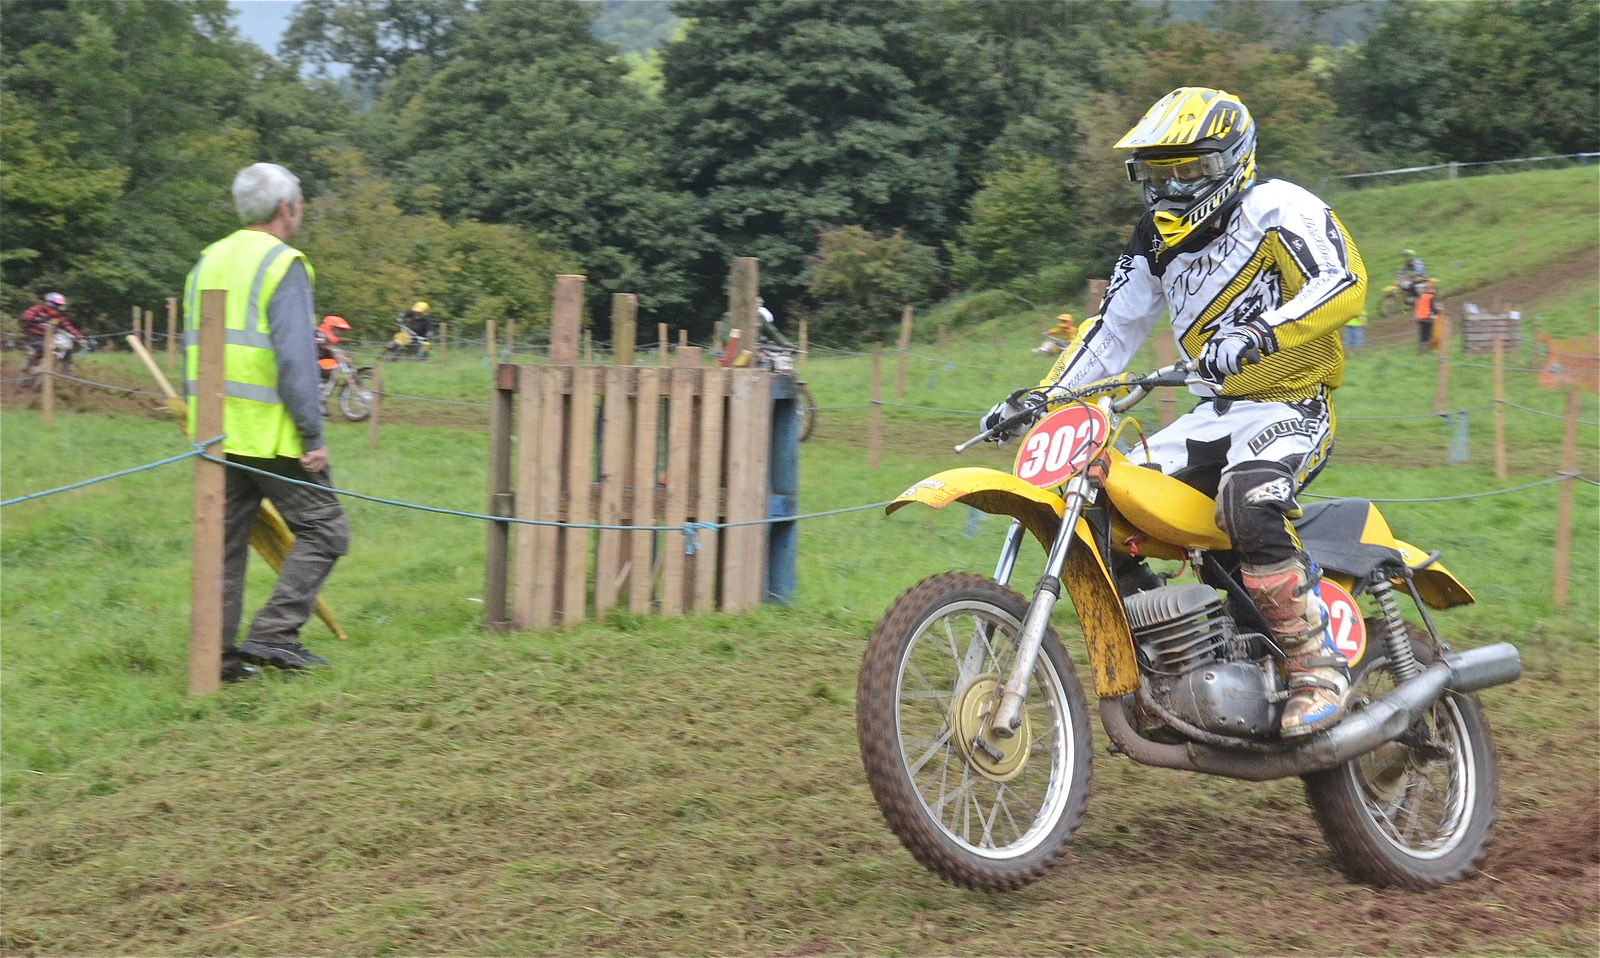 Llanthony Classic Scramble Photos September 2015 classicdirtbikerider.com..14